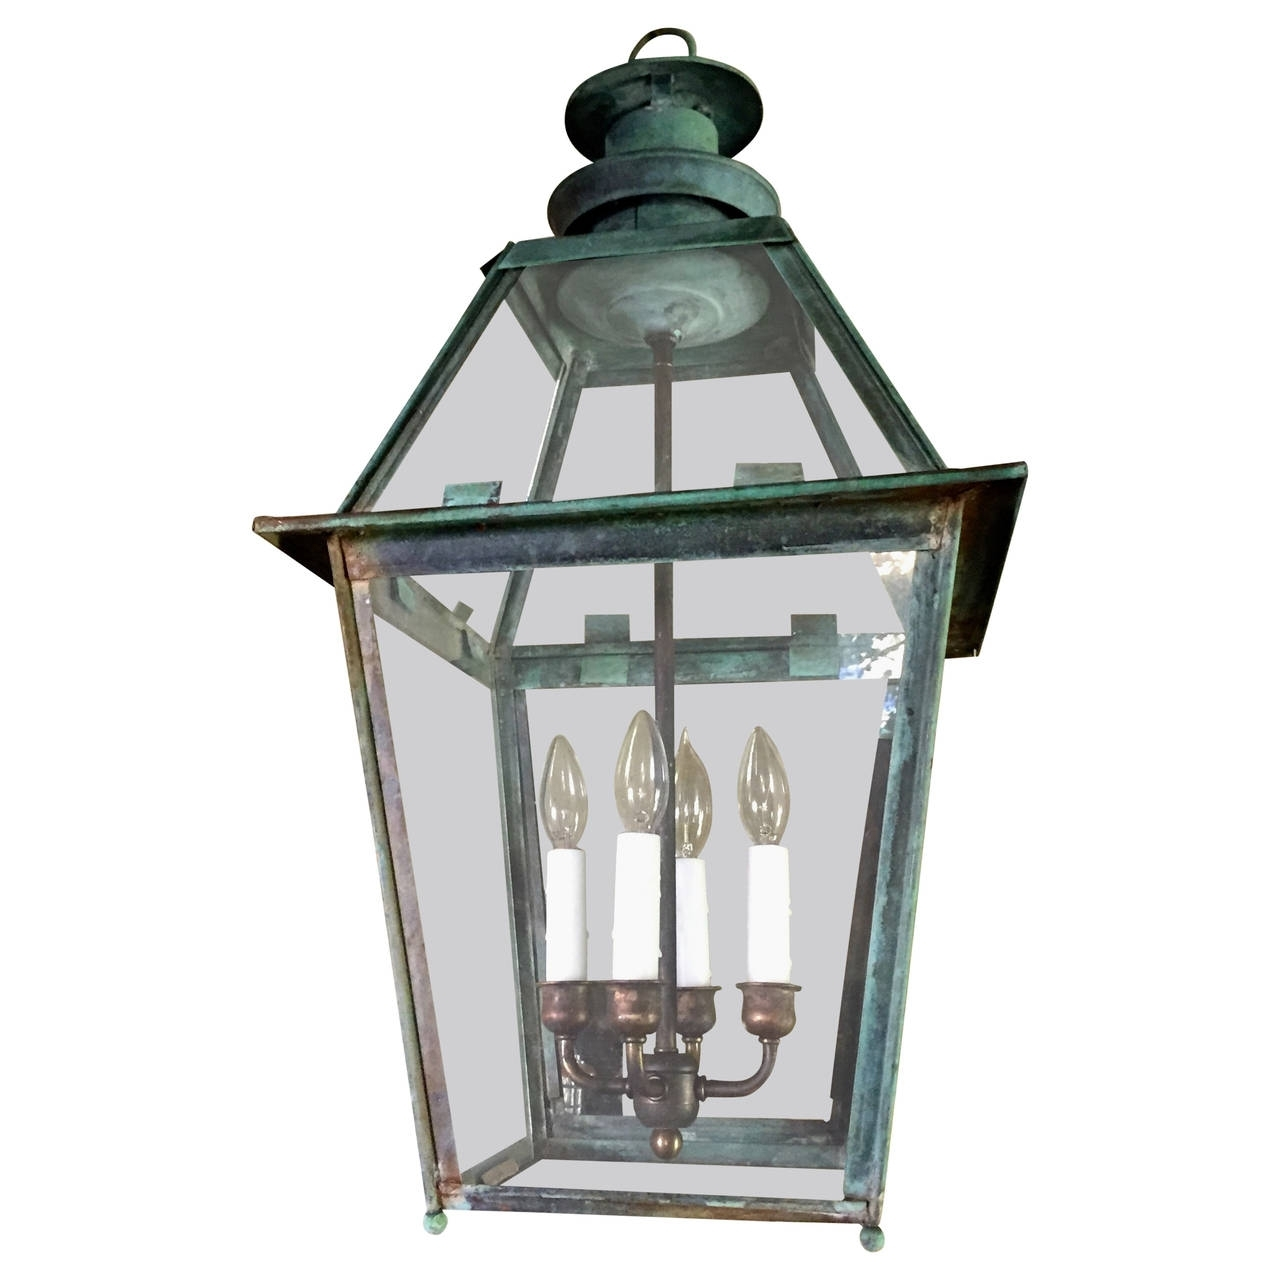 Natural Verdigris Copper Lantern For Sale At 1Stdibs Inside Popular Copper Outdoor Lanterns (Gallery 18 of 20)